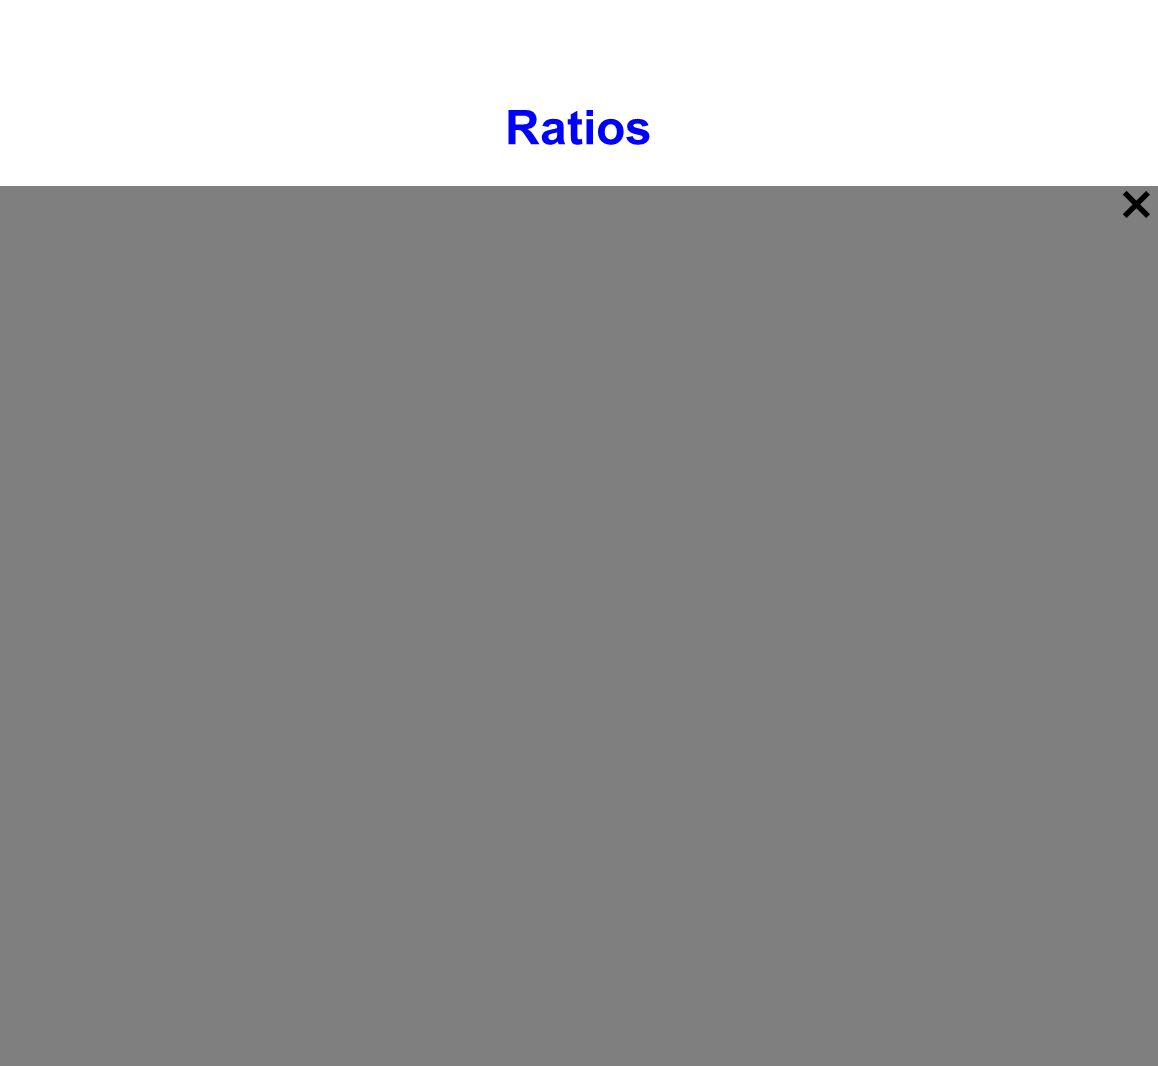 Ratio - A comparison of two numbers by division Ratios can be written three different ways: a to b a : b a b Each is read,